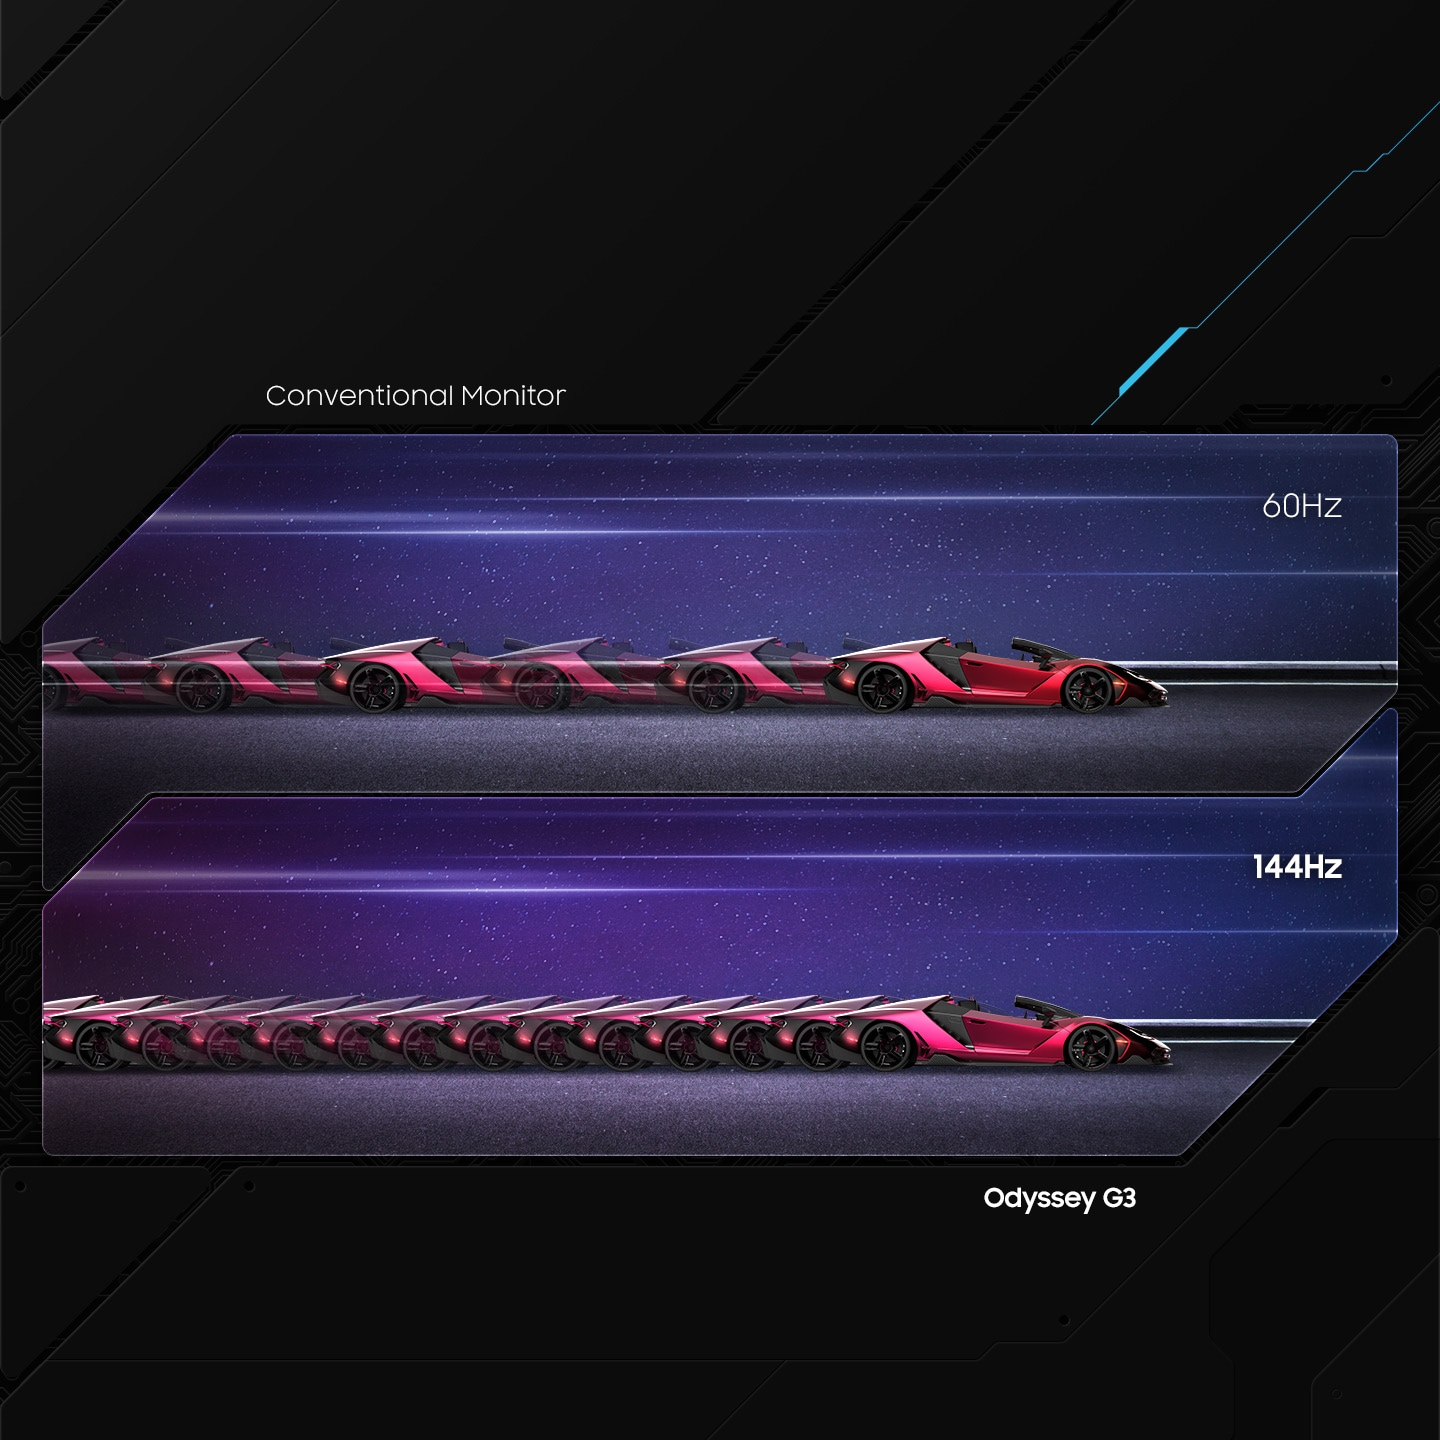 The number of frames between 60Hz and 144Hz refresh rate are compared to describe the benefit of the high refresh rate.